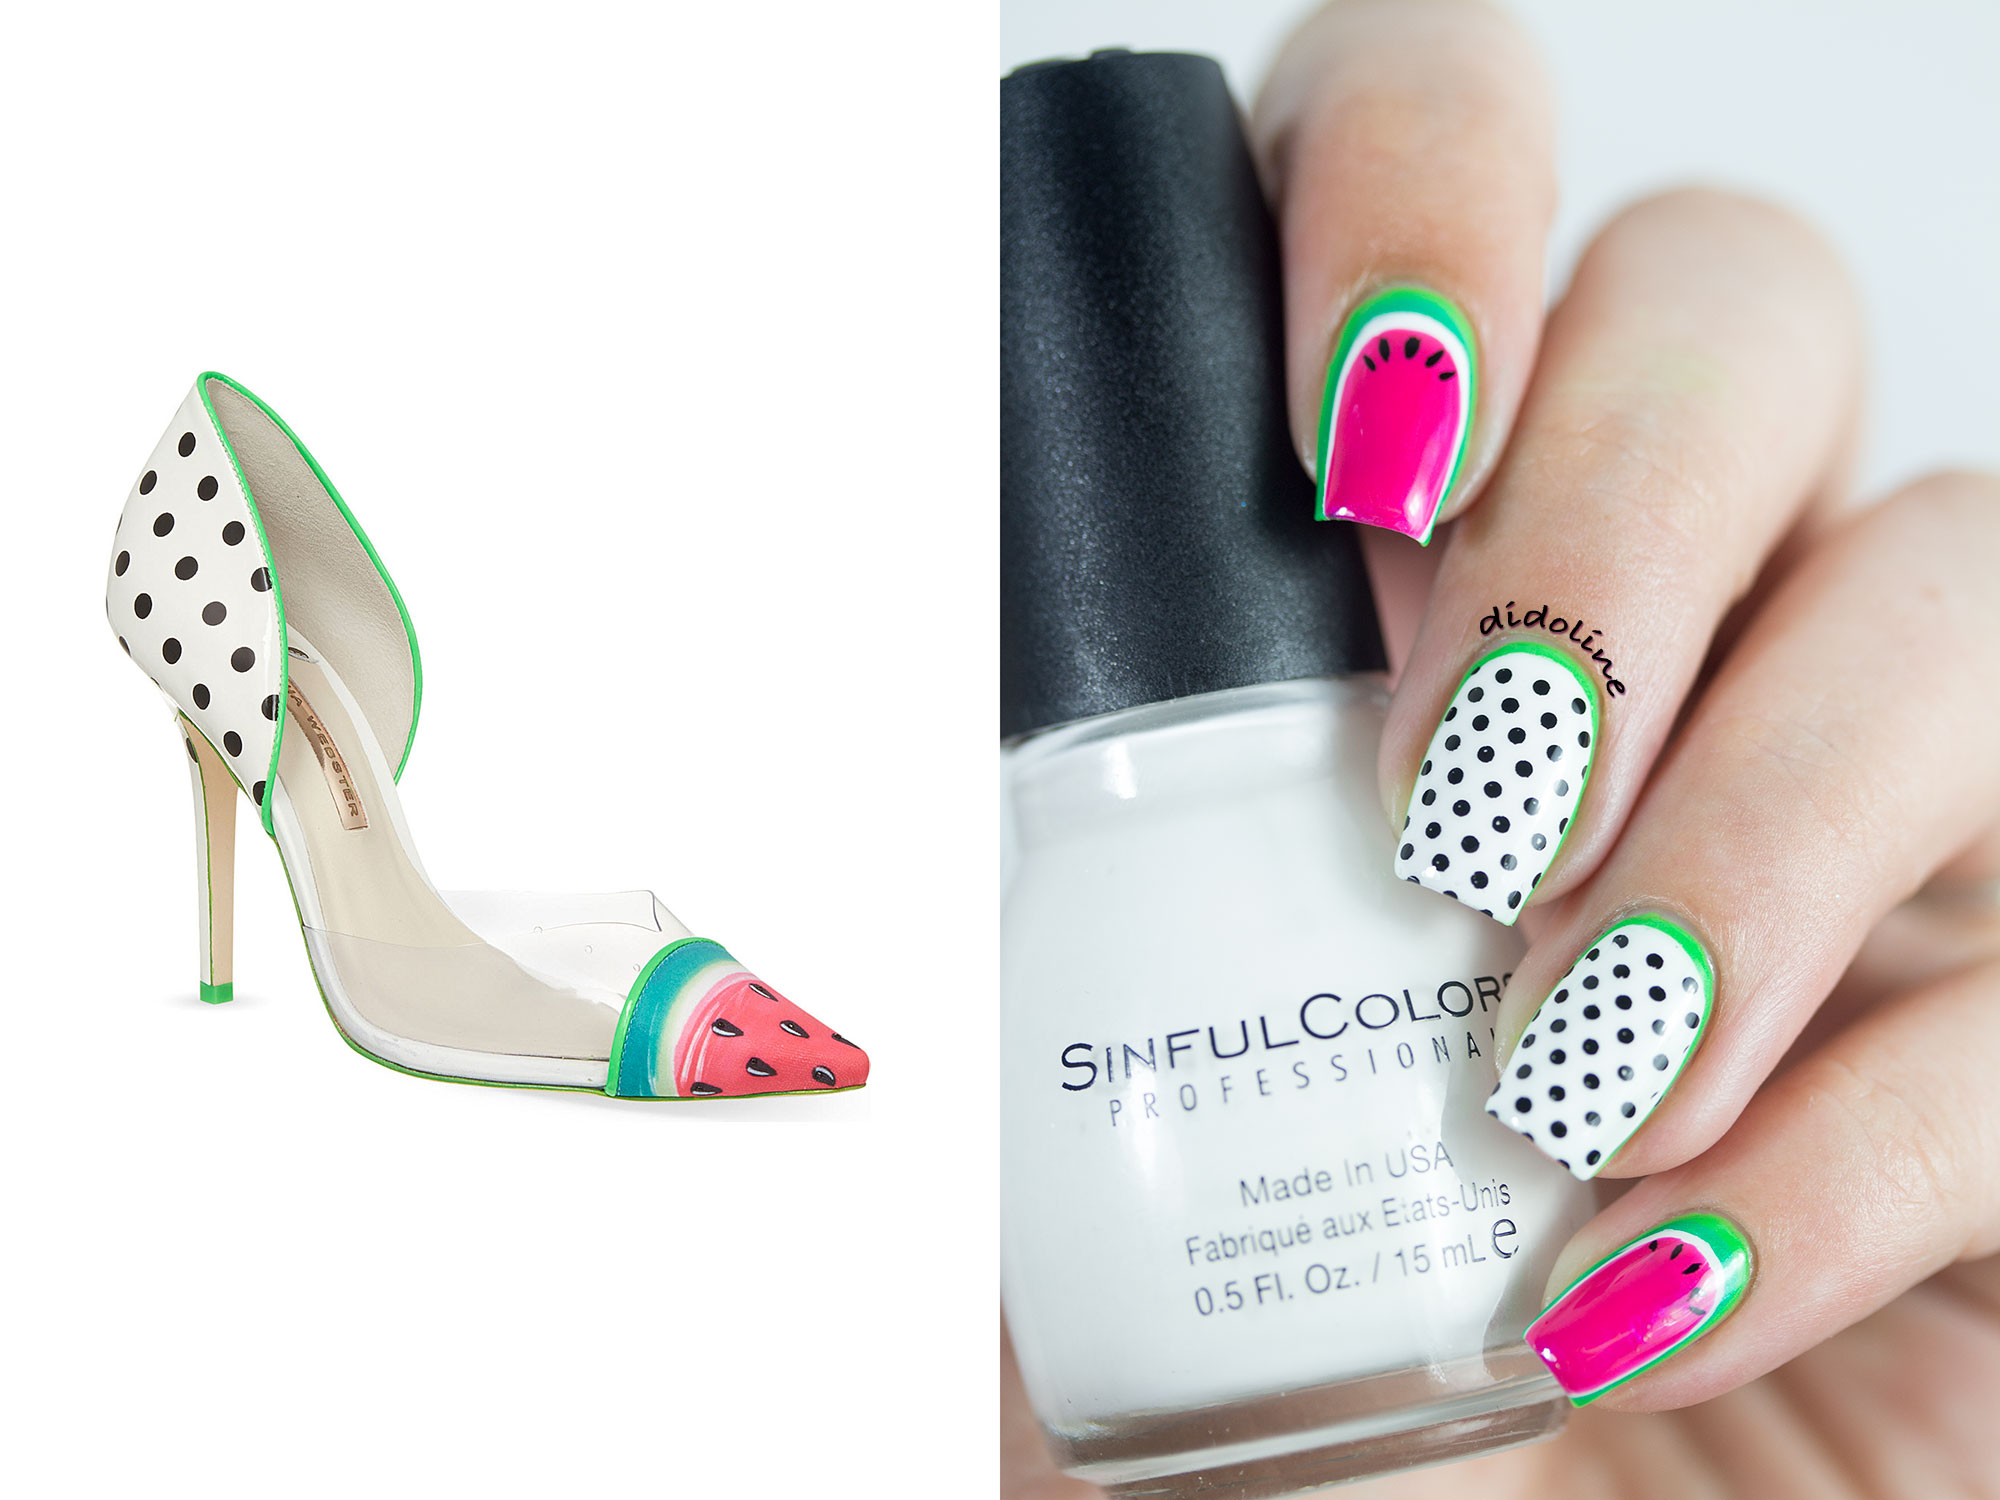 FashionFriday-SophiaWebster-JessicaWatermelon-0